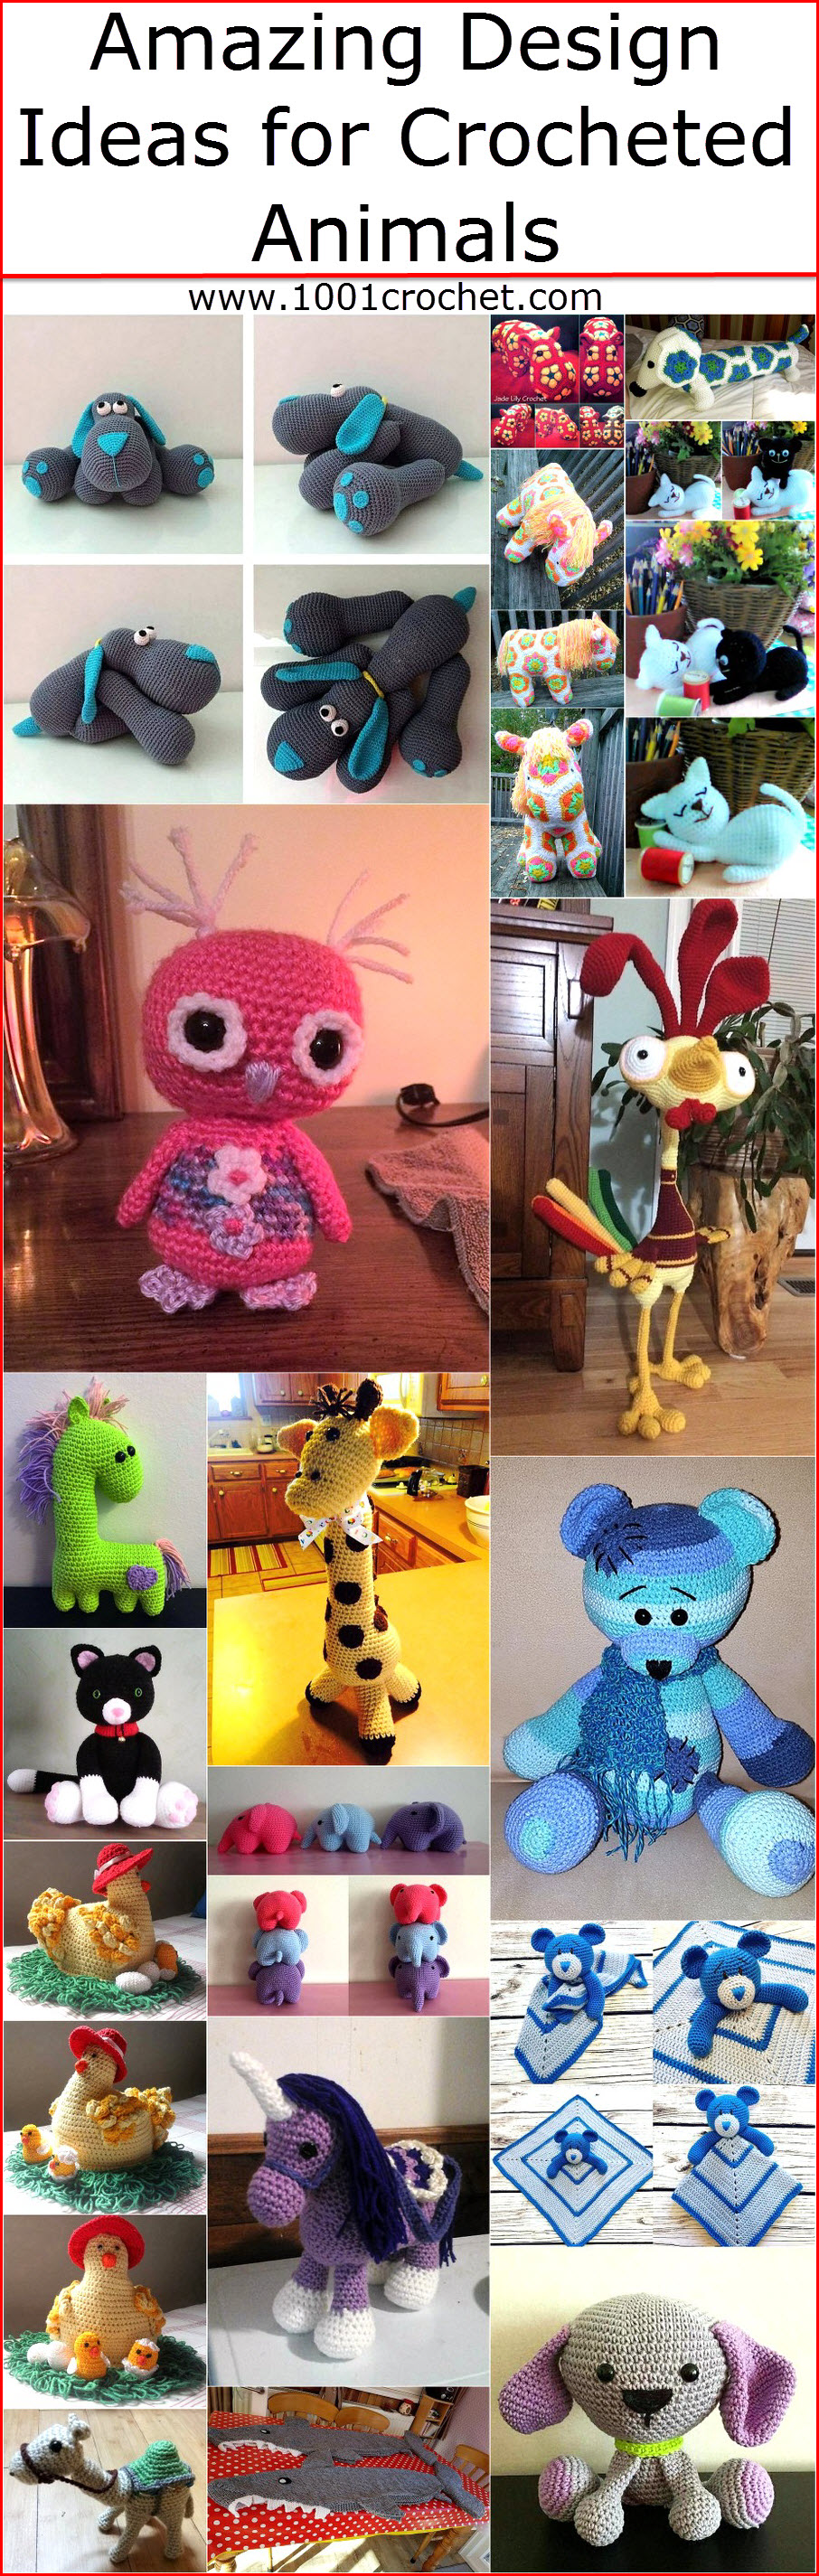 Amazing Design Ideas for Crocheted Animals